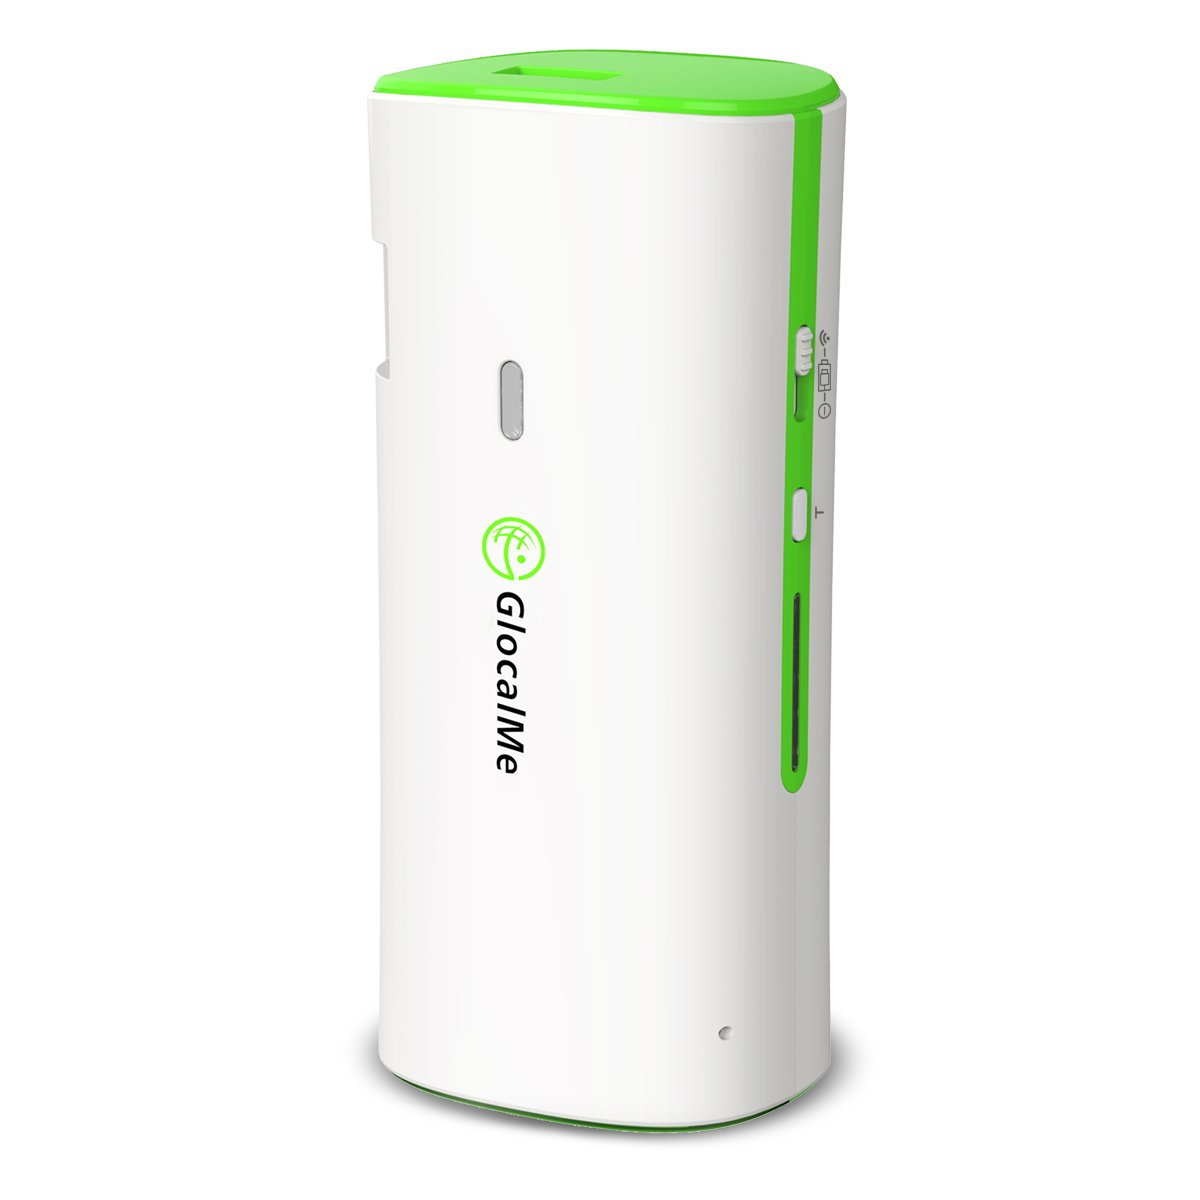 (GREAT SALE!!)Glocalme® 3G Mobile WiFi Hotspot SIM-Free & Free Roaming Support Over 108 countries Featured Ethernet Travel Router & Power Bank (Green)